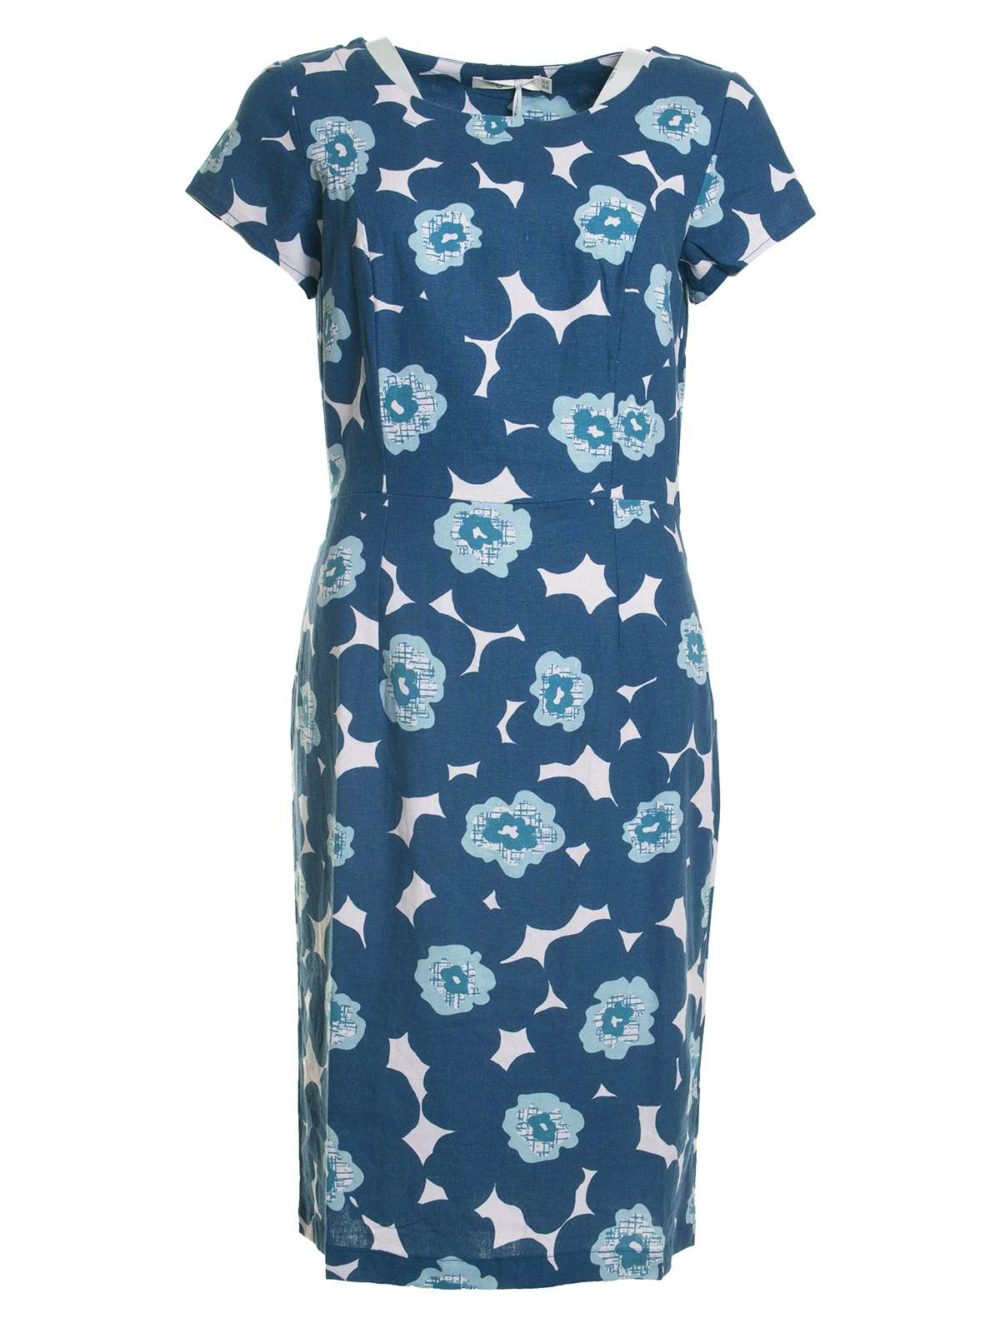 St Austell Dress Modern Floral Lily and Me Katie Kerr Women's Clothing